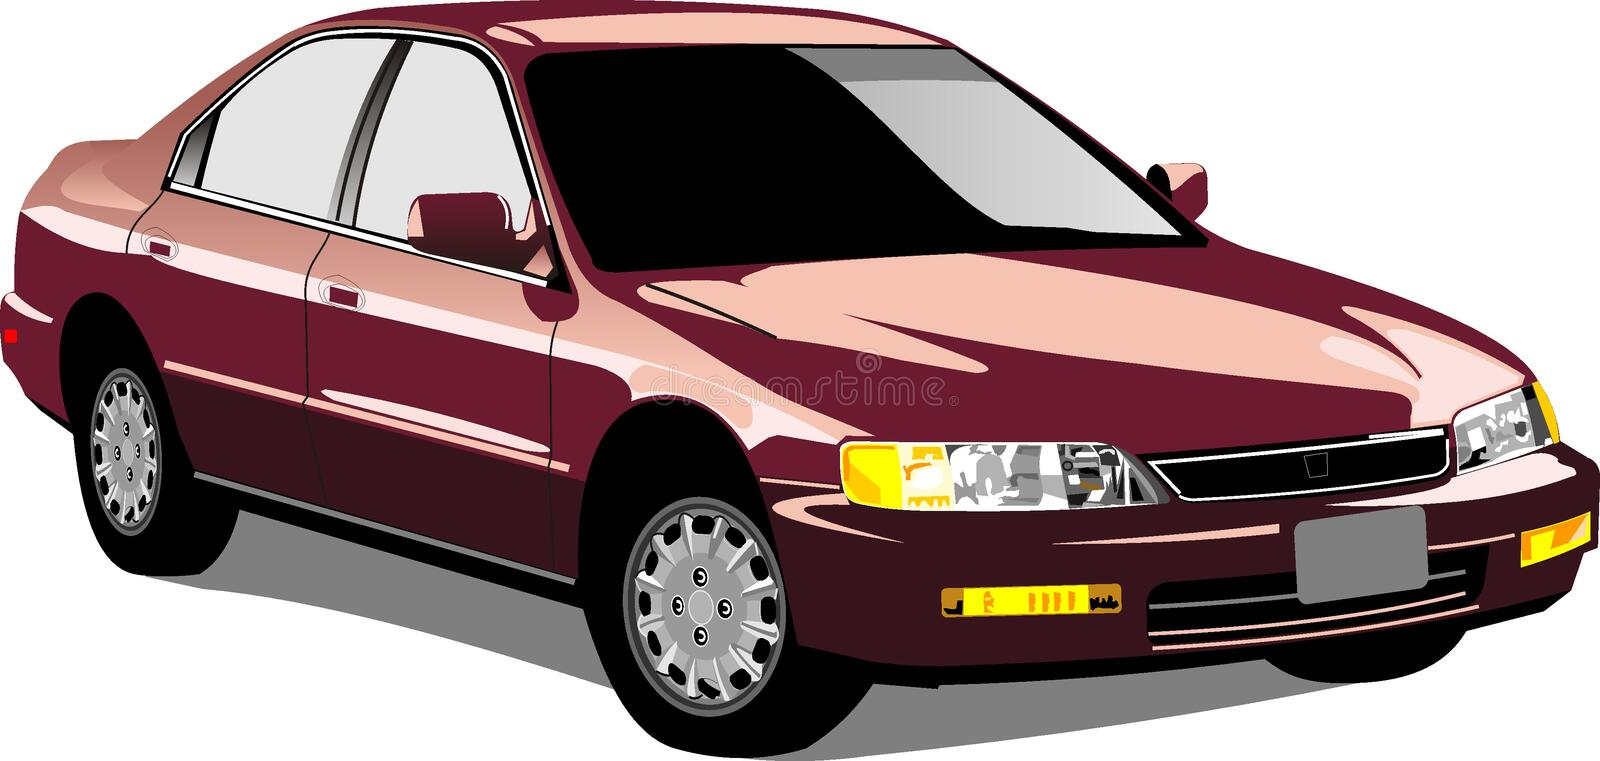 Vektor Honda Accord stock abbildung